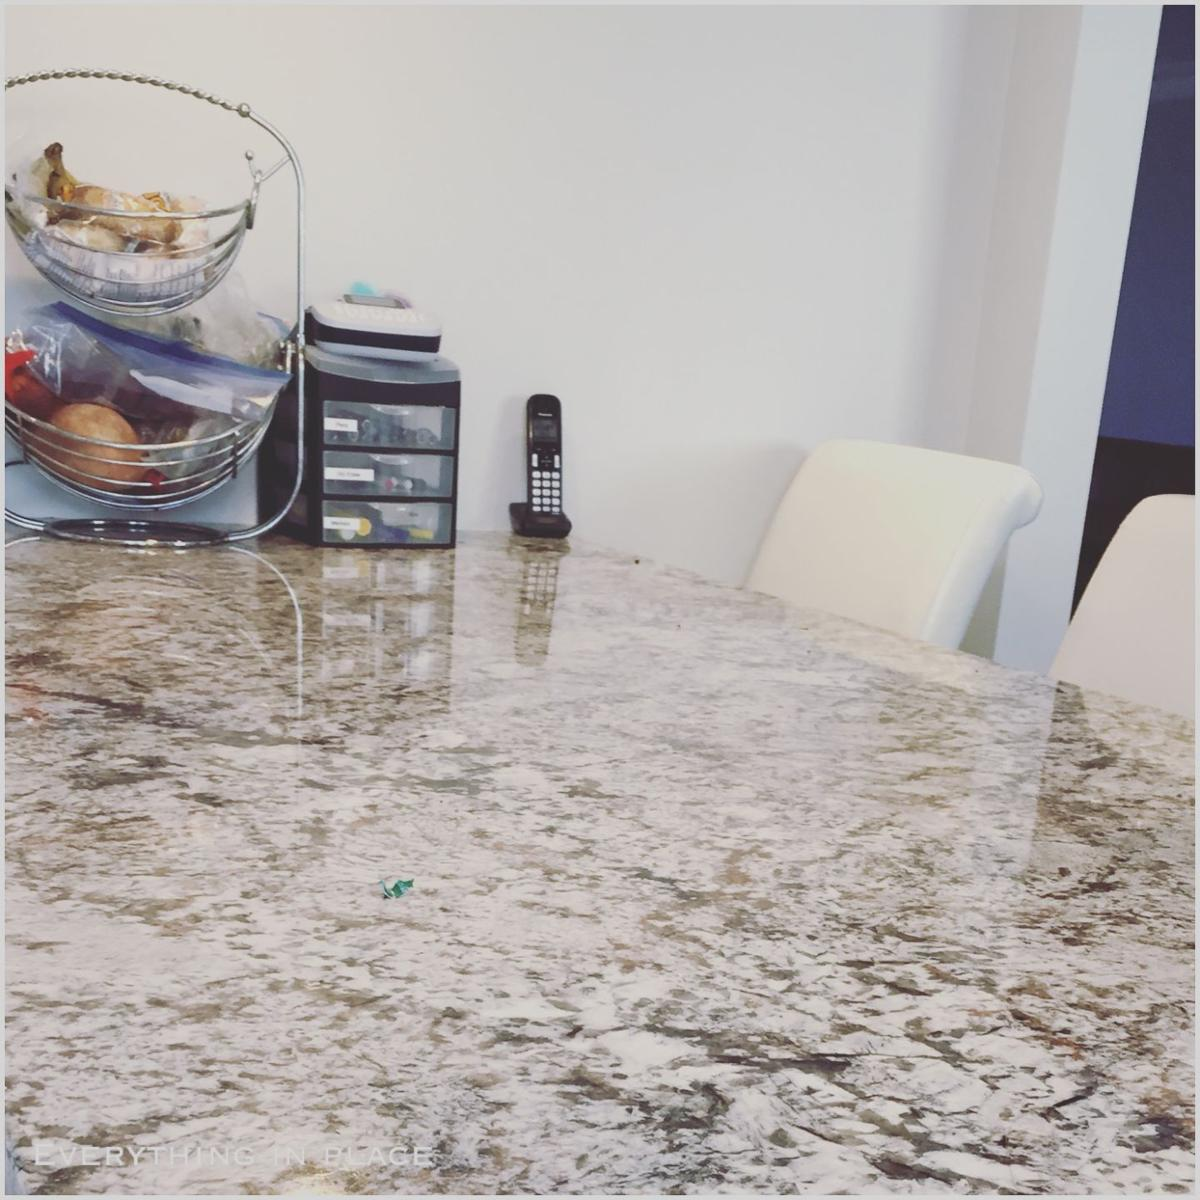 Houses & Homes: 4 Ways To Conquer Your Countertop Clutter